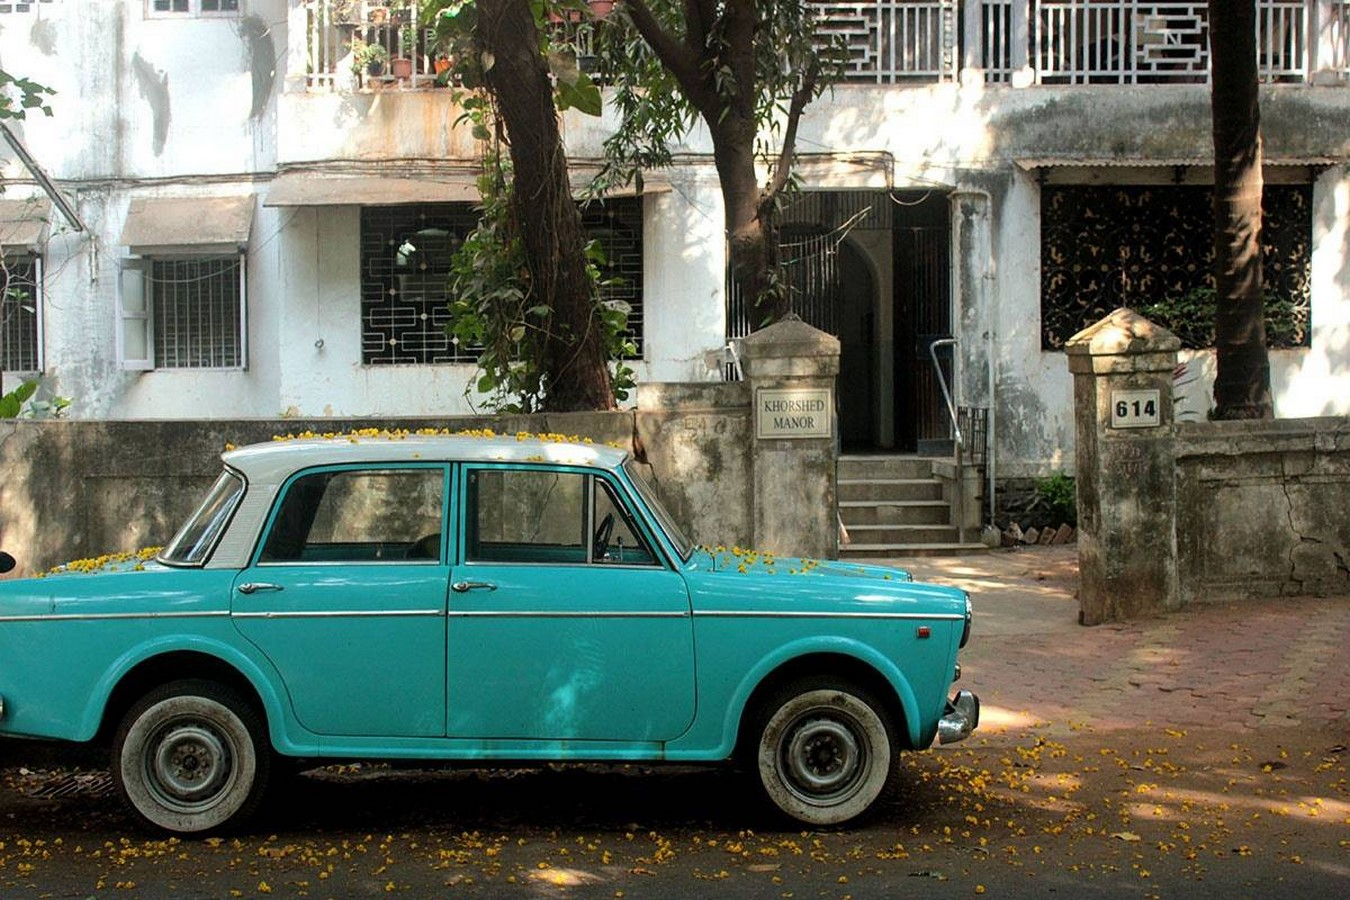 The Parsi colonies of Mumbai- understanding the contrast in social architecture of Mumbai - Sheet4